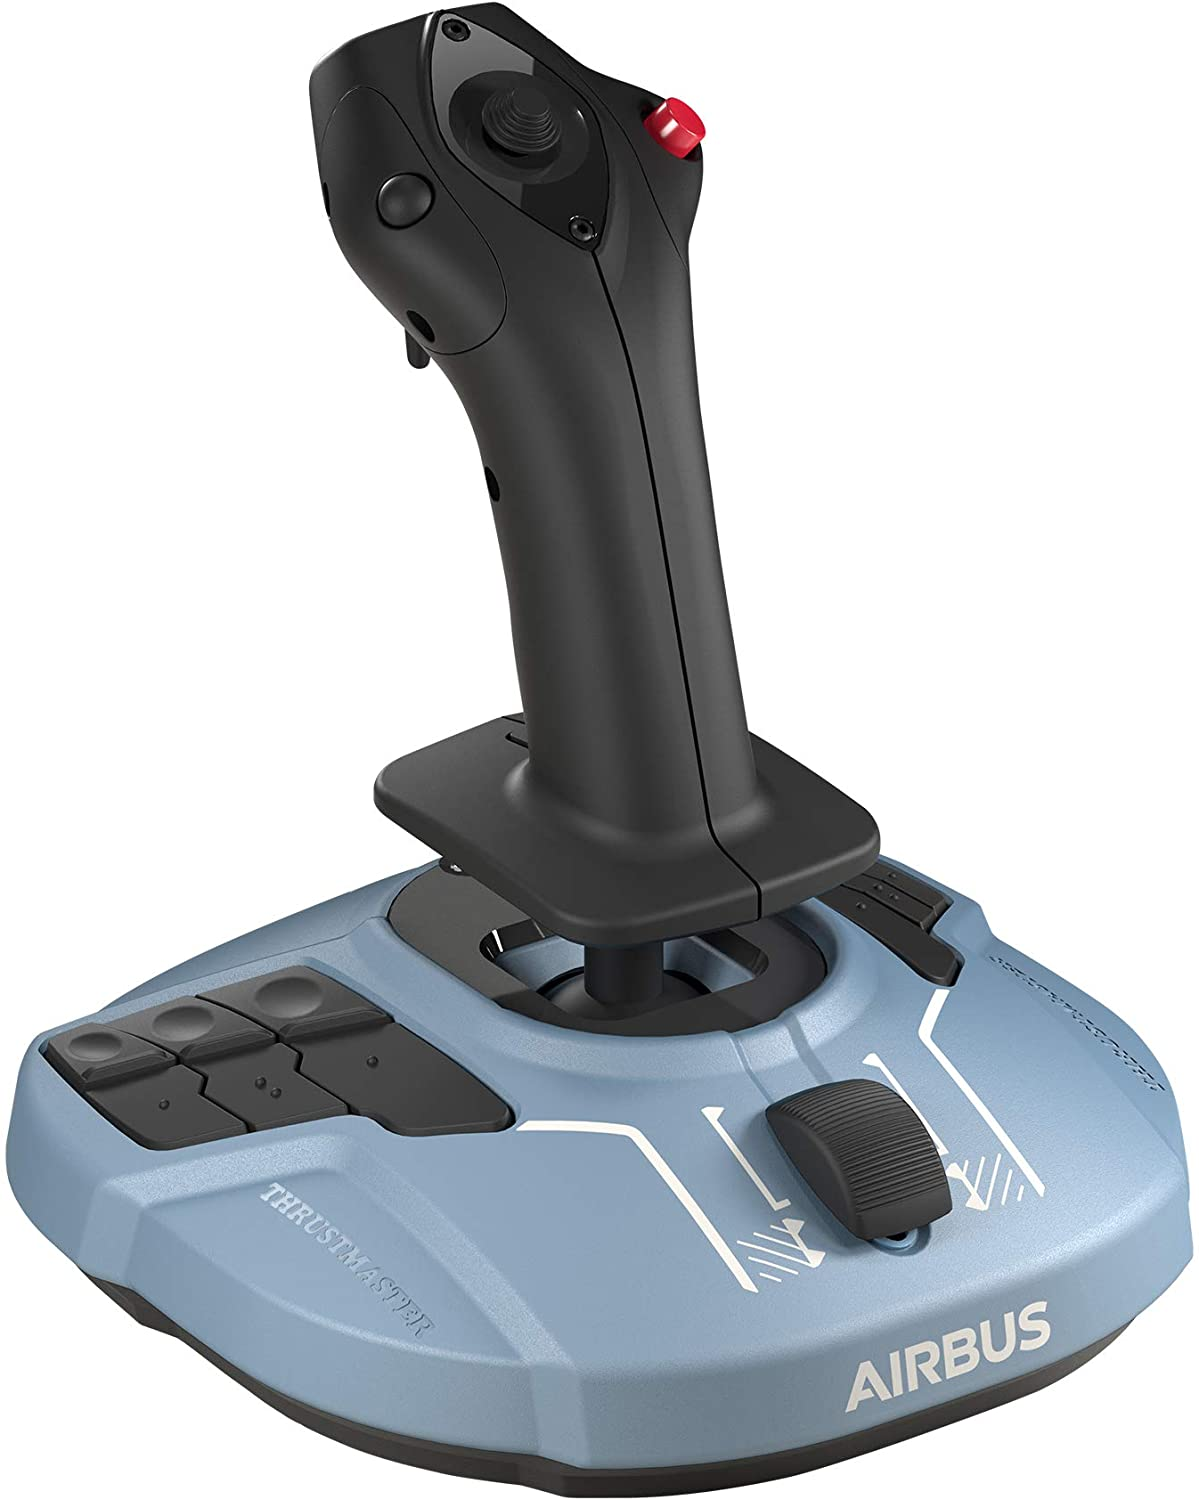 THRUSTMASTER TCA SIDESTICK AIRBUS EDITION FOR PC 2960844